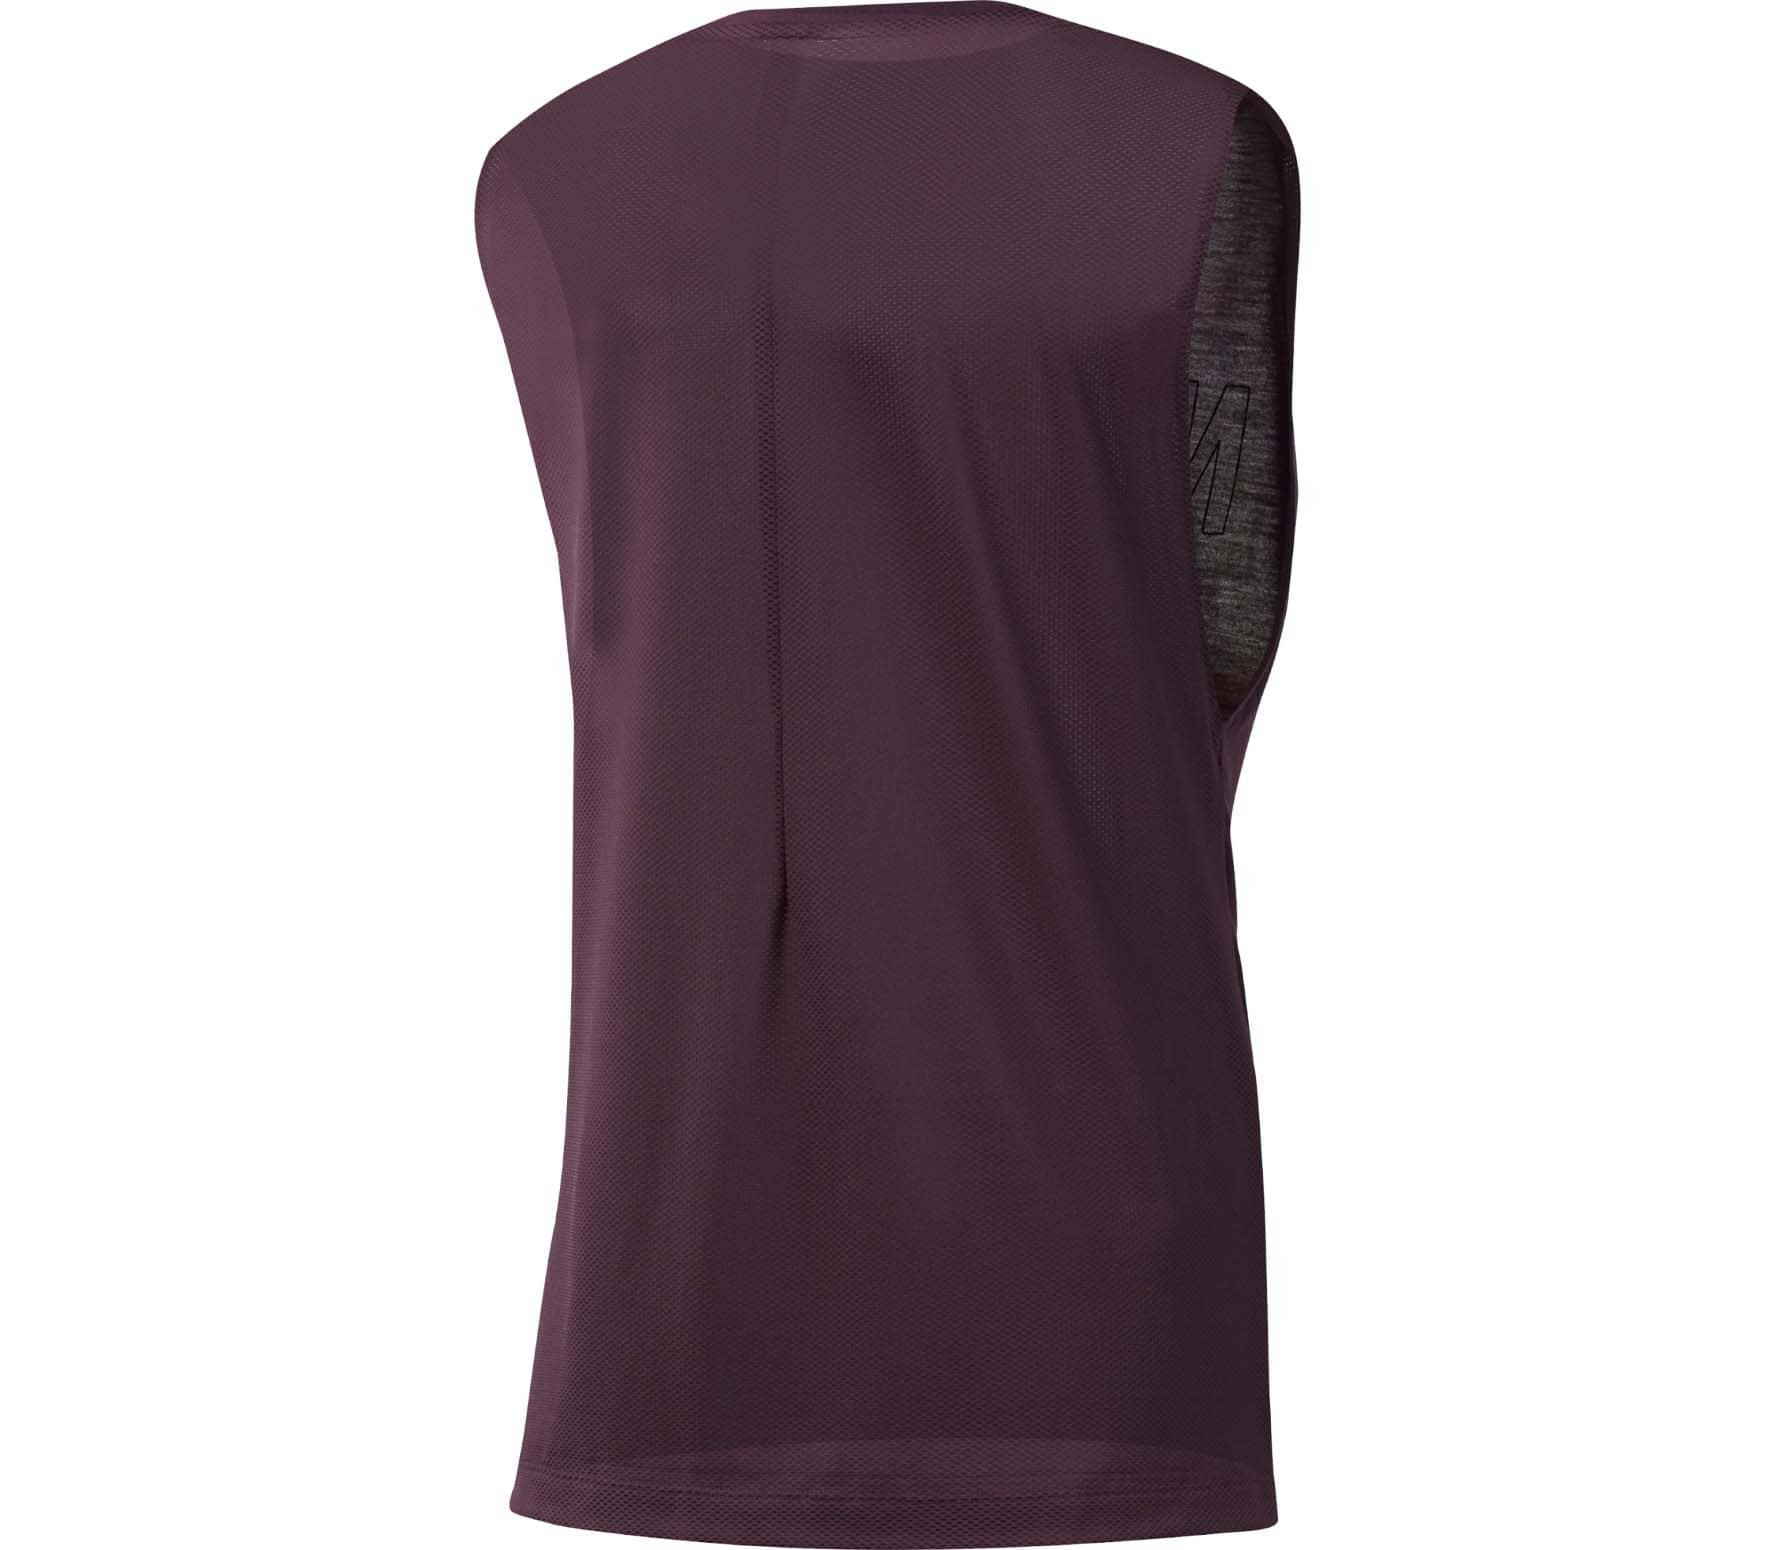 1835ae2a135a4 Reebok - Training Supply Graphic Muscle women s training tank top ...